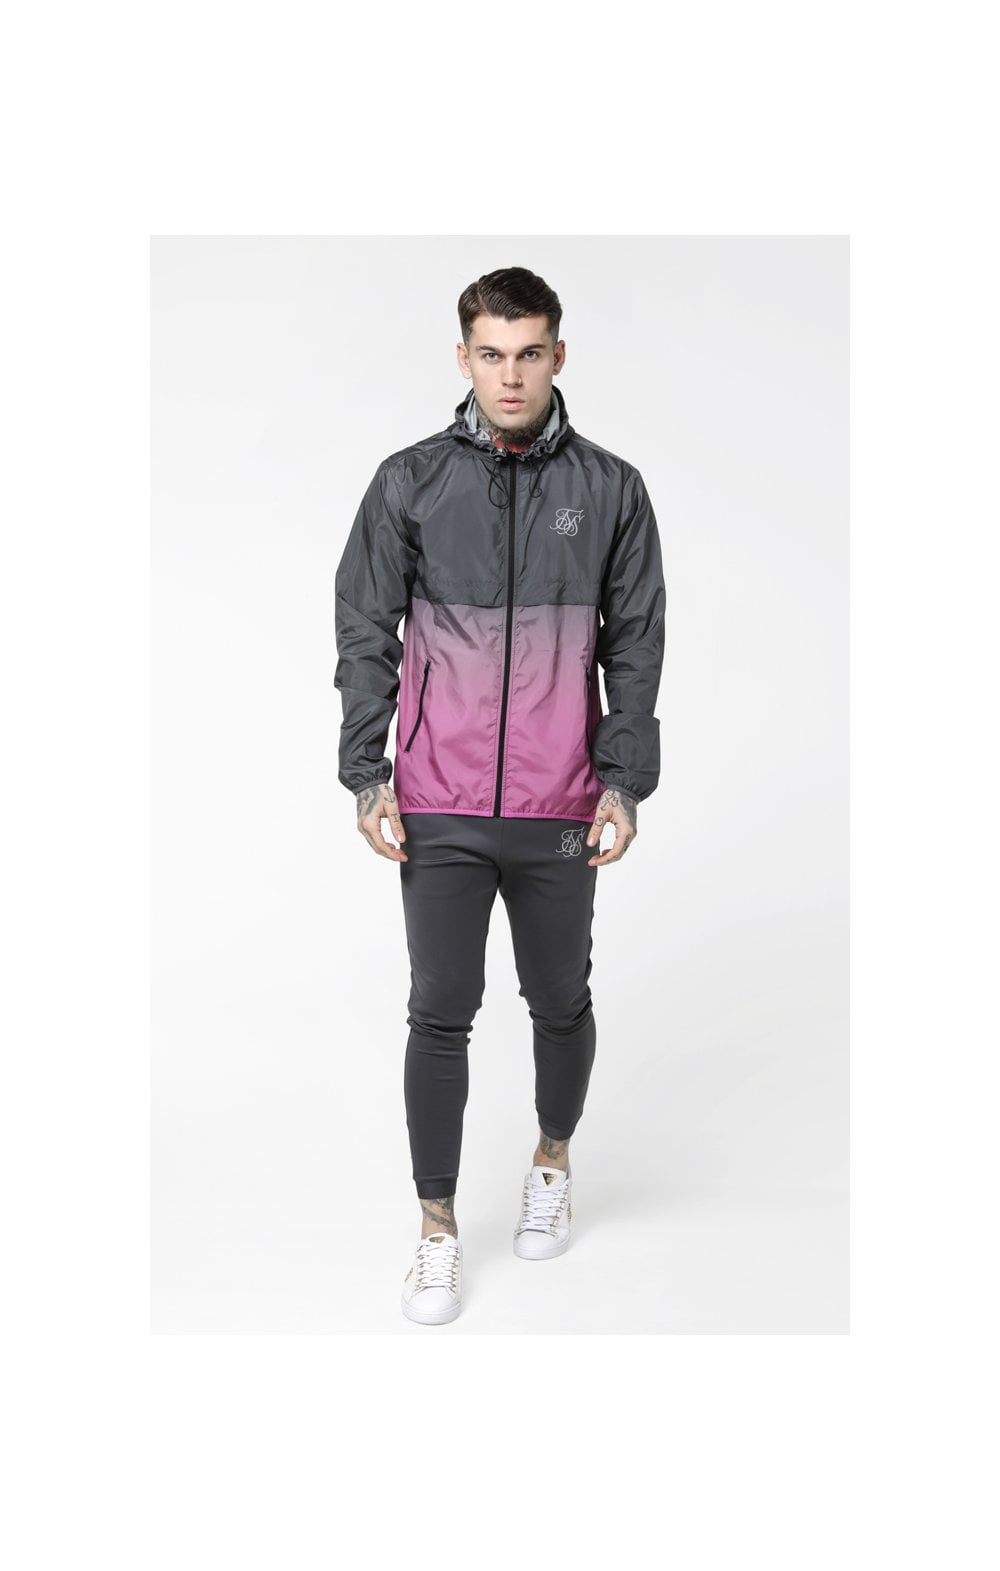 Load image into Gallery viewer, SikSilk Fade Windrunner - Grey & Pink (3)